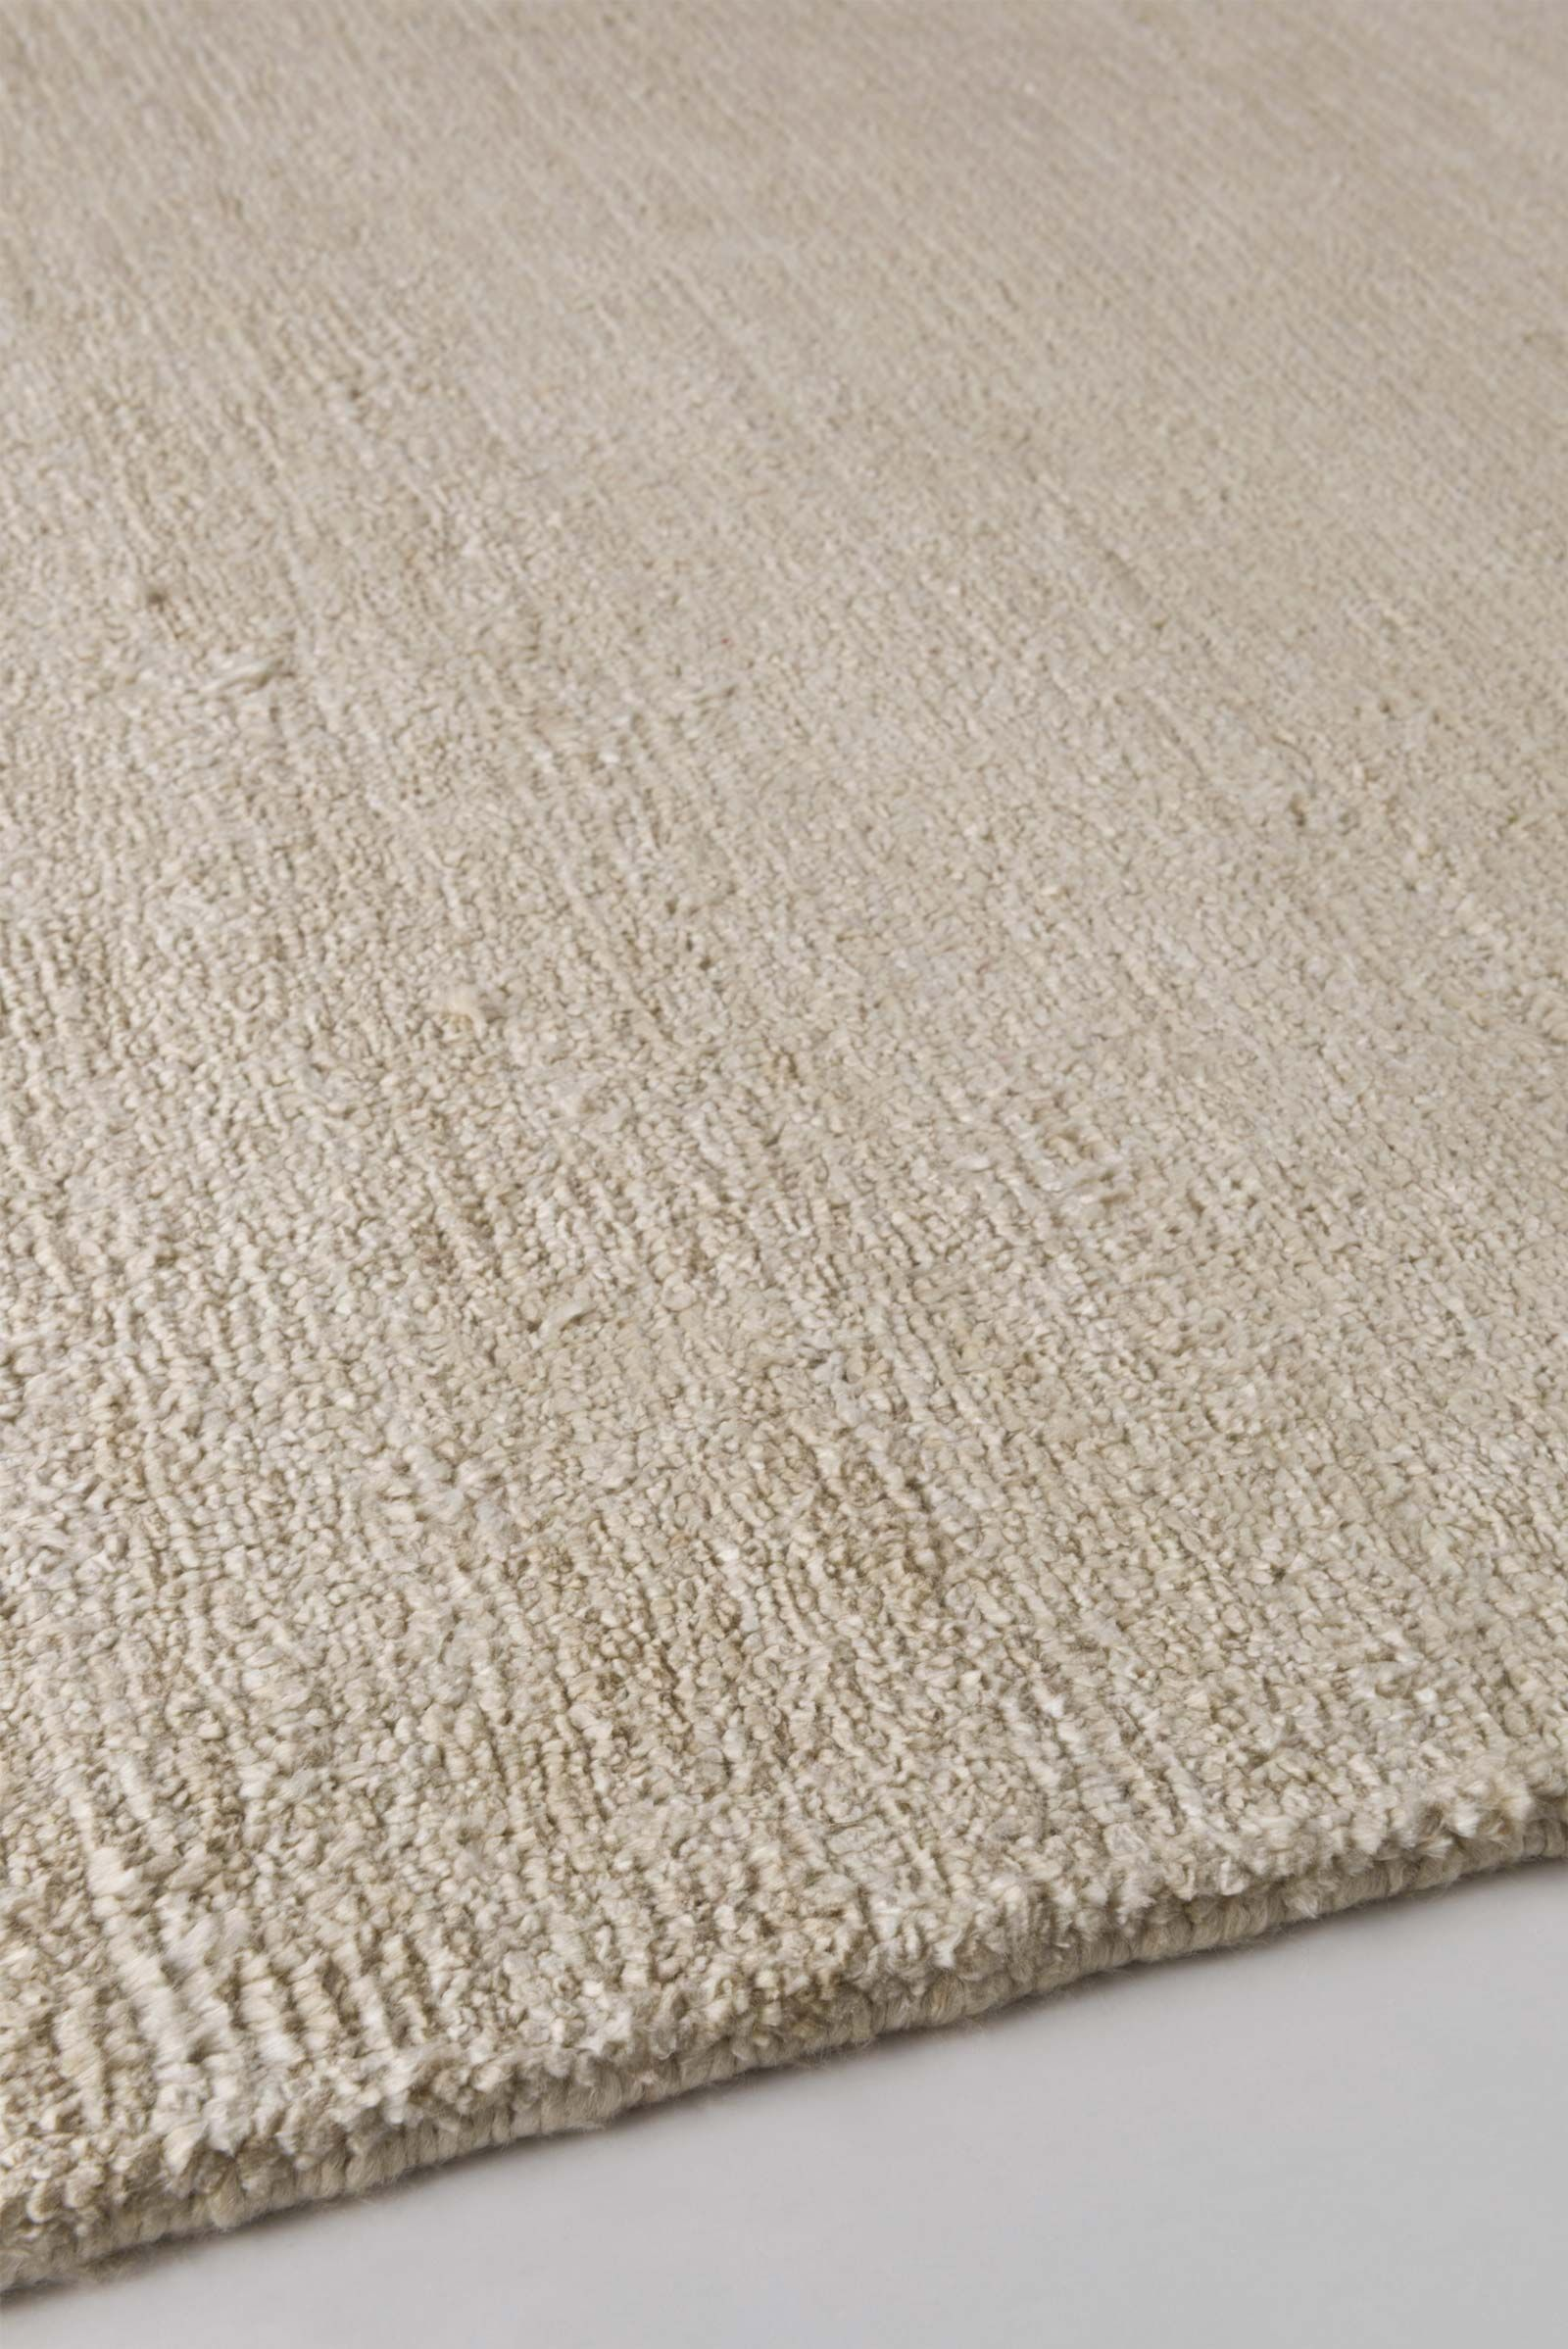 Nice Bamboo Silk Pale Gold By The Rug Company   The Rug Company Idea